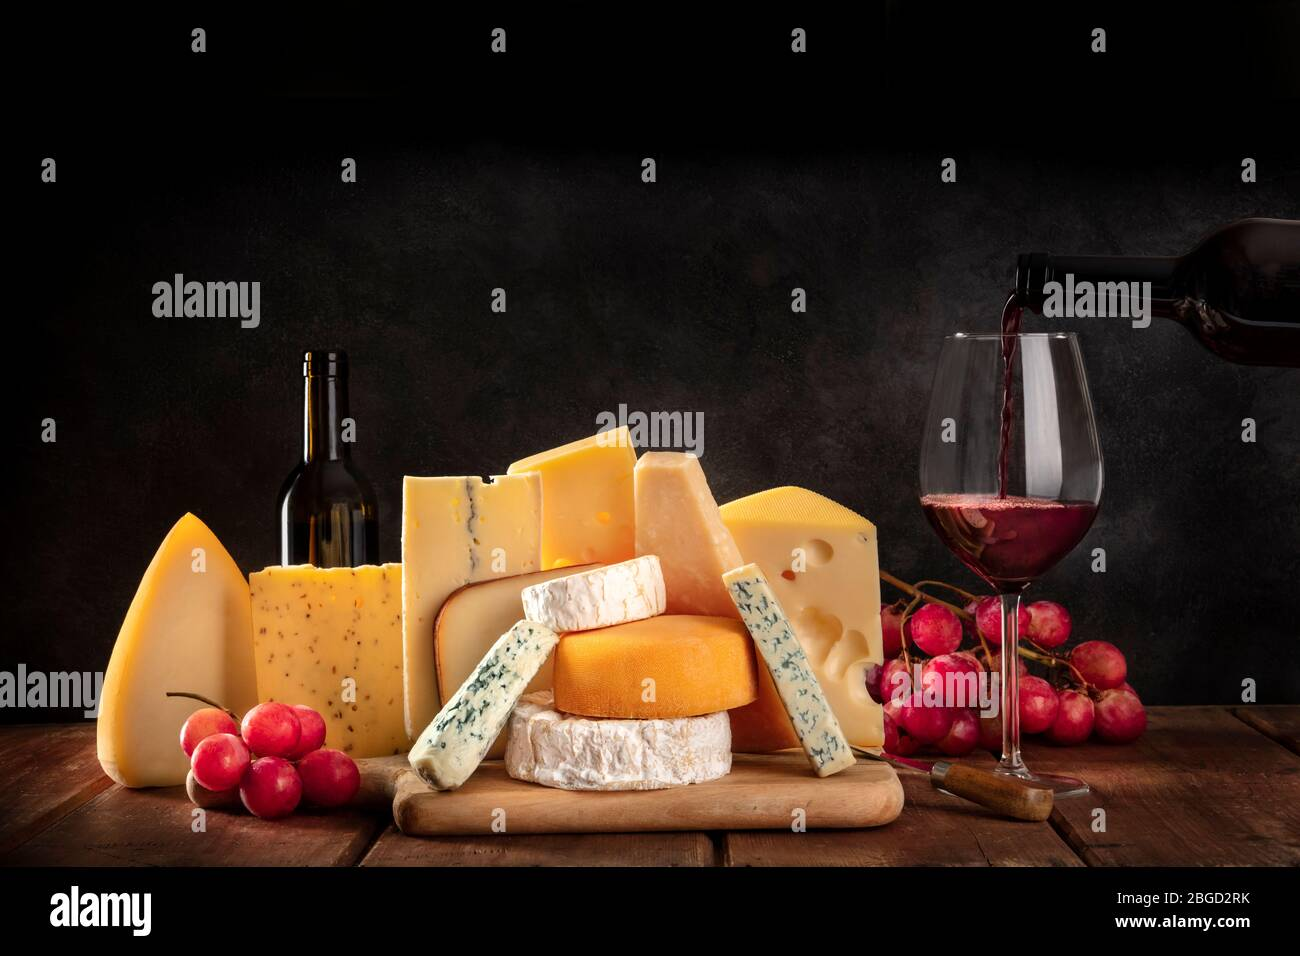 Cheeses with grapes and pouring wine, a side view on a dark background with copy space Stock Photo